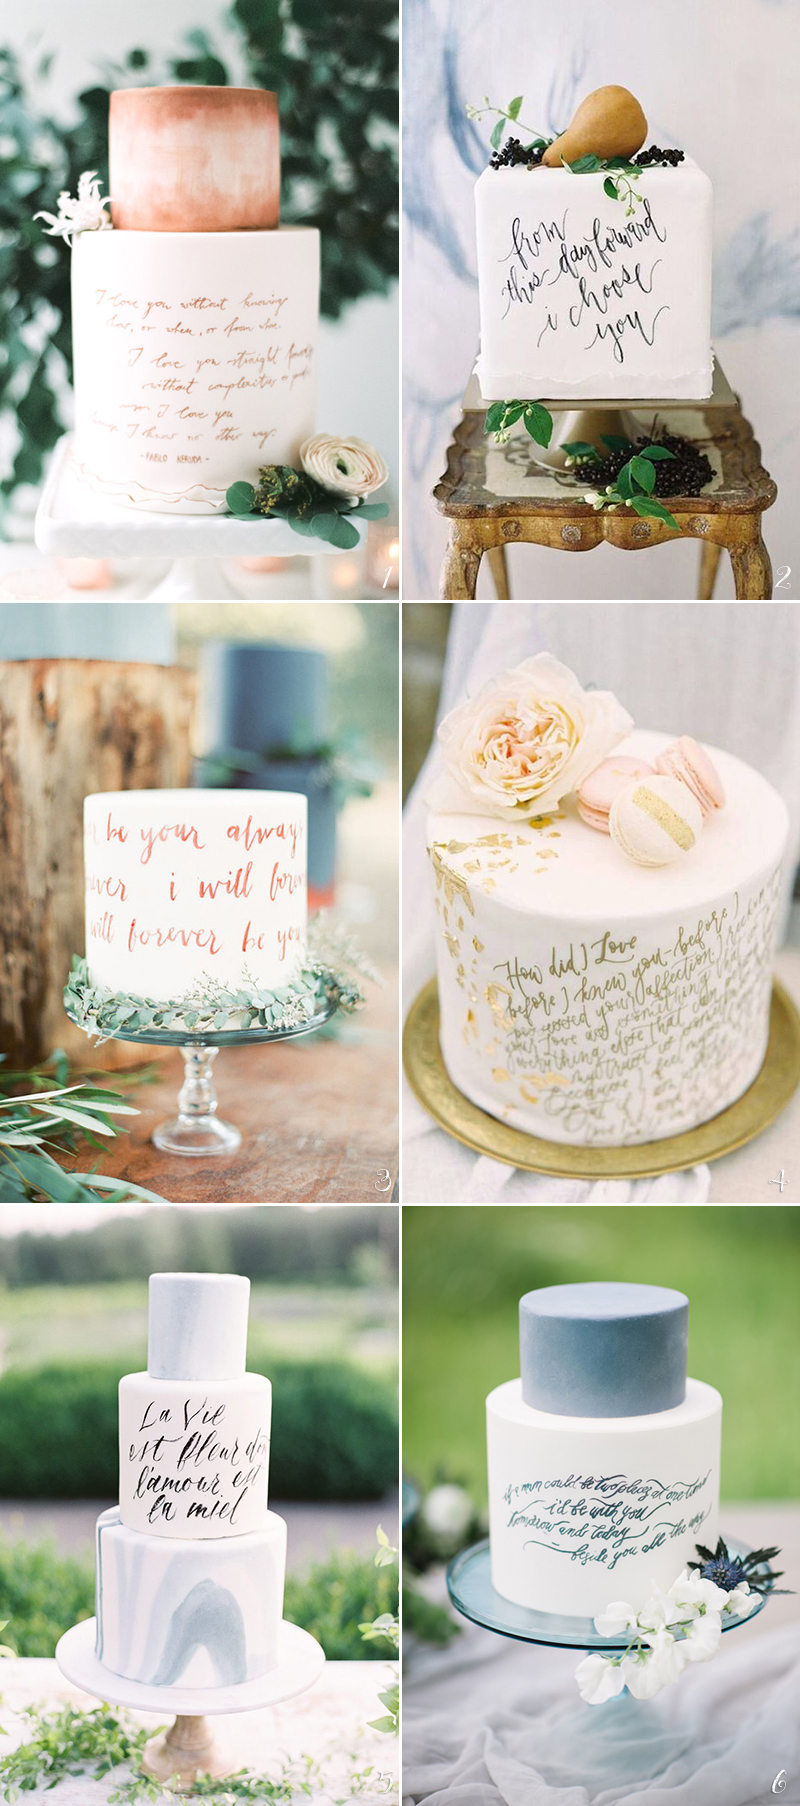 calligraphy wedding cake